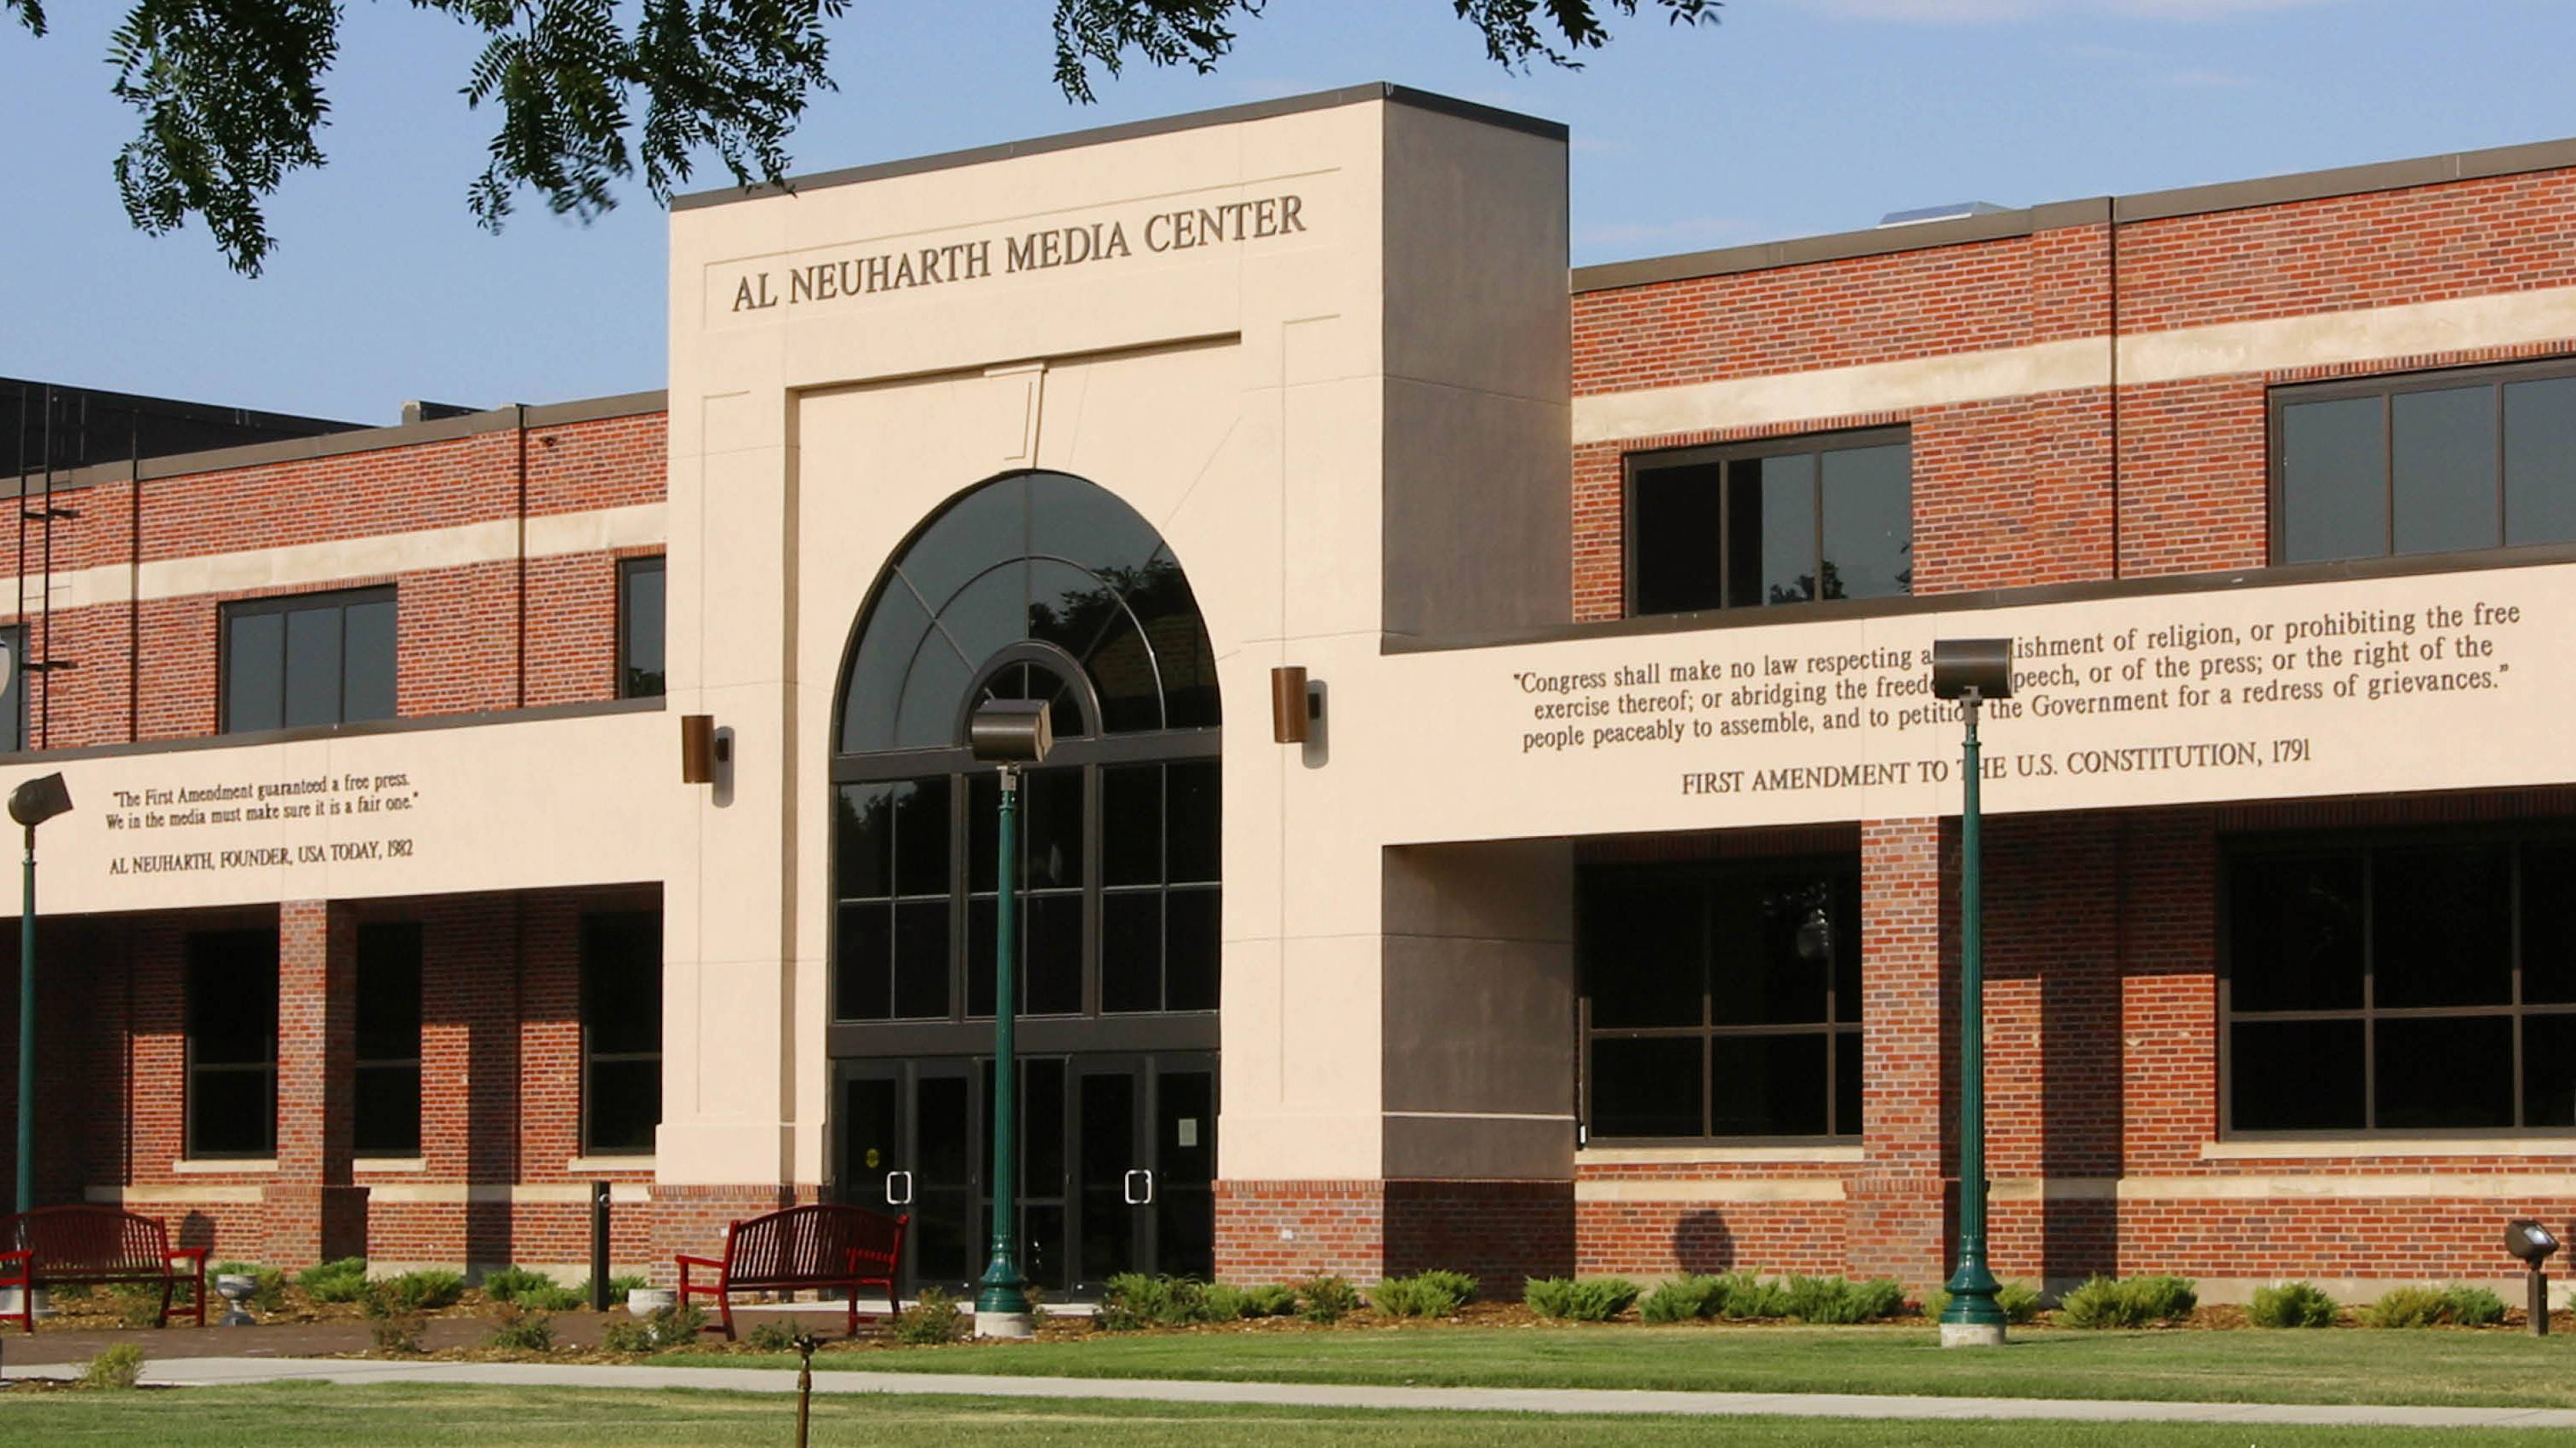 Al Neuharth Media Center